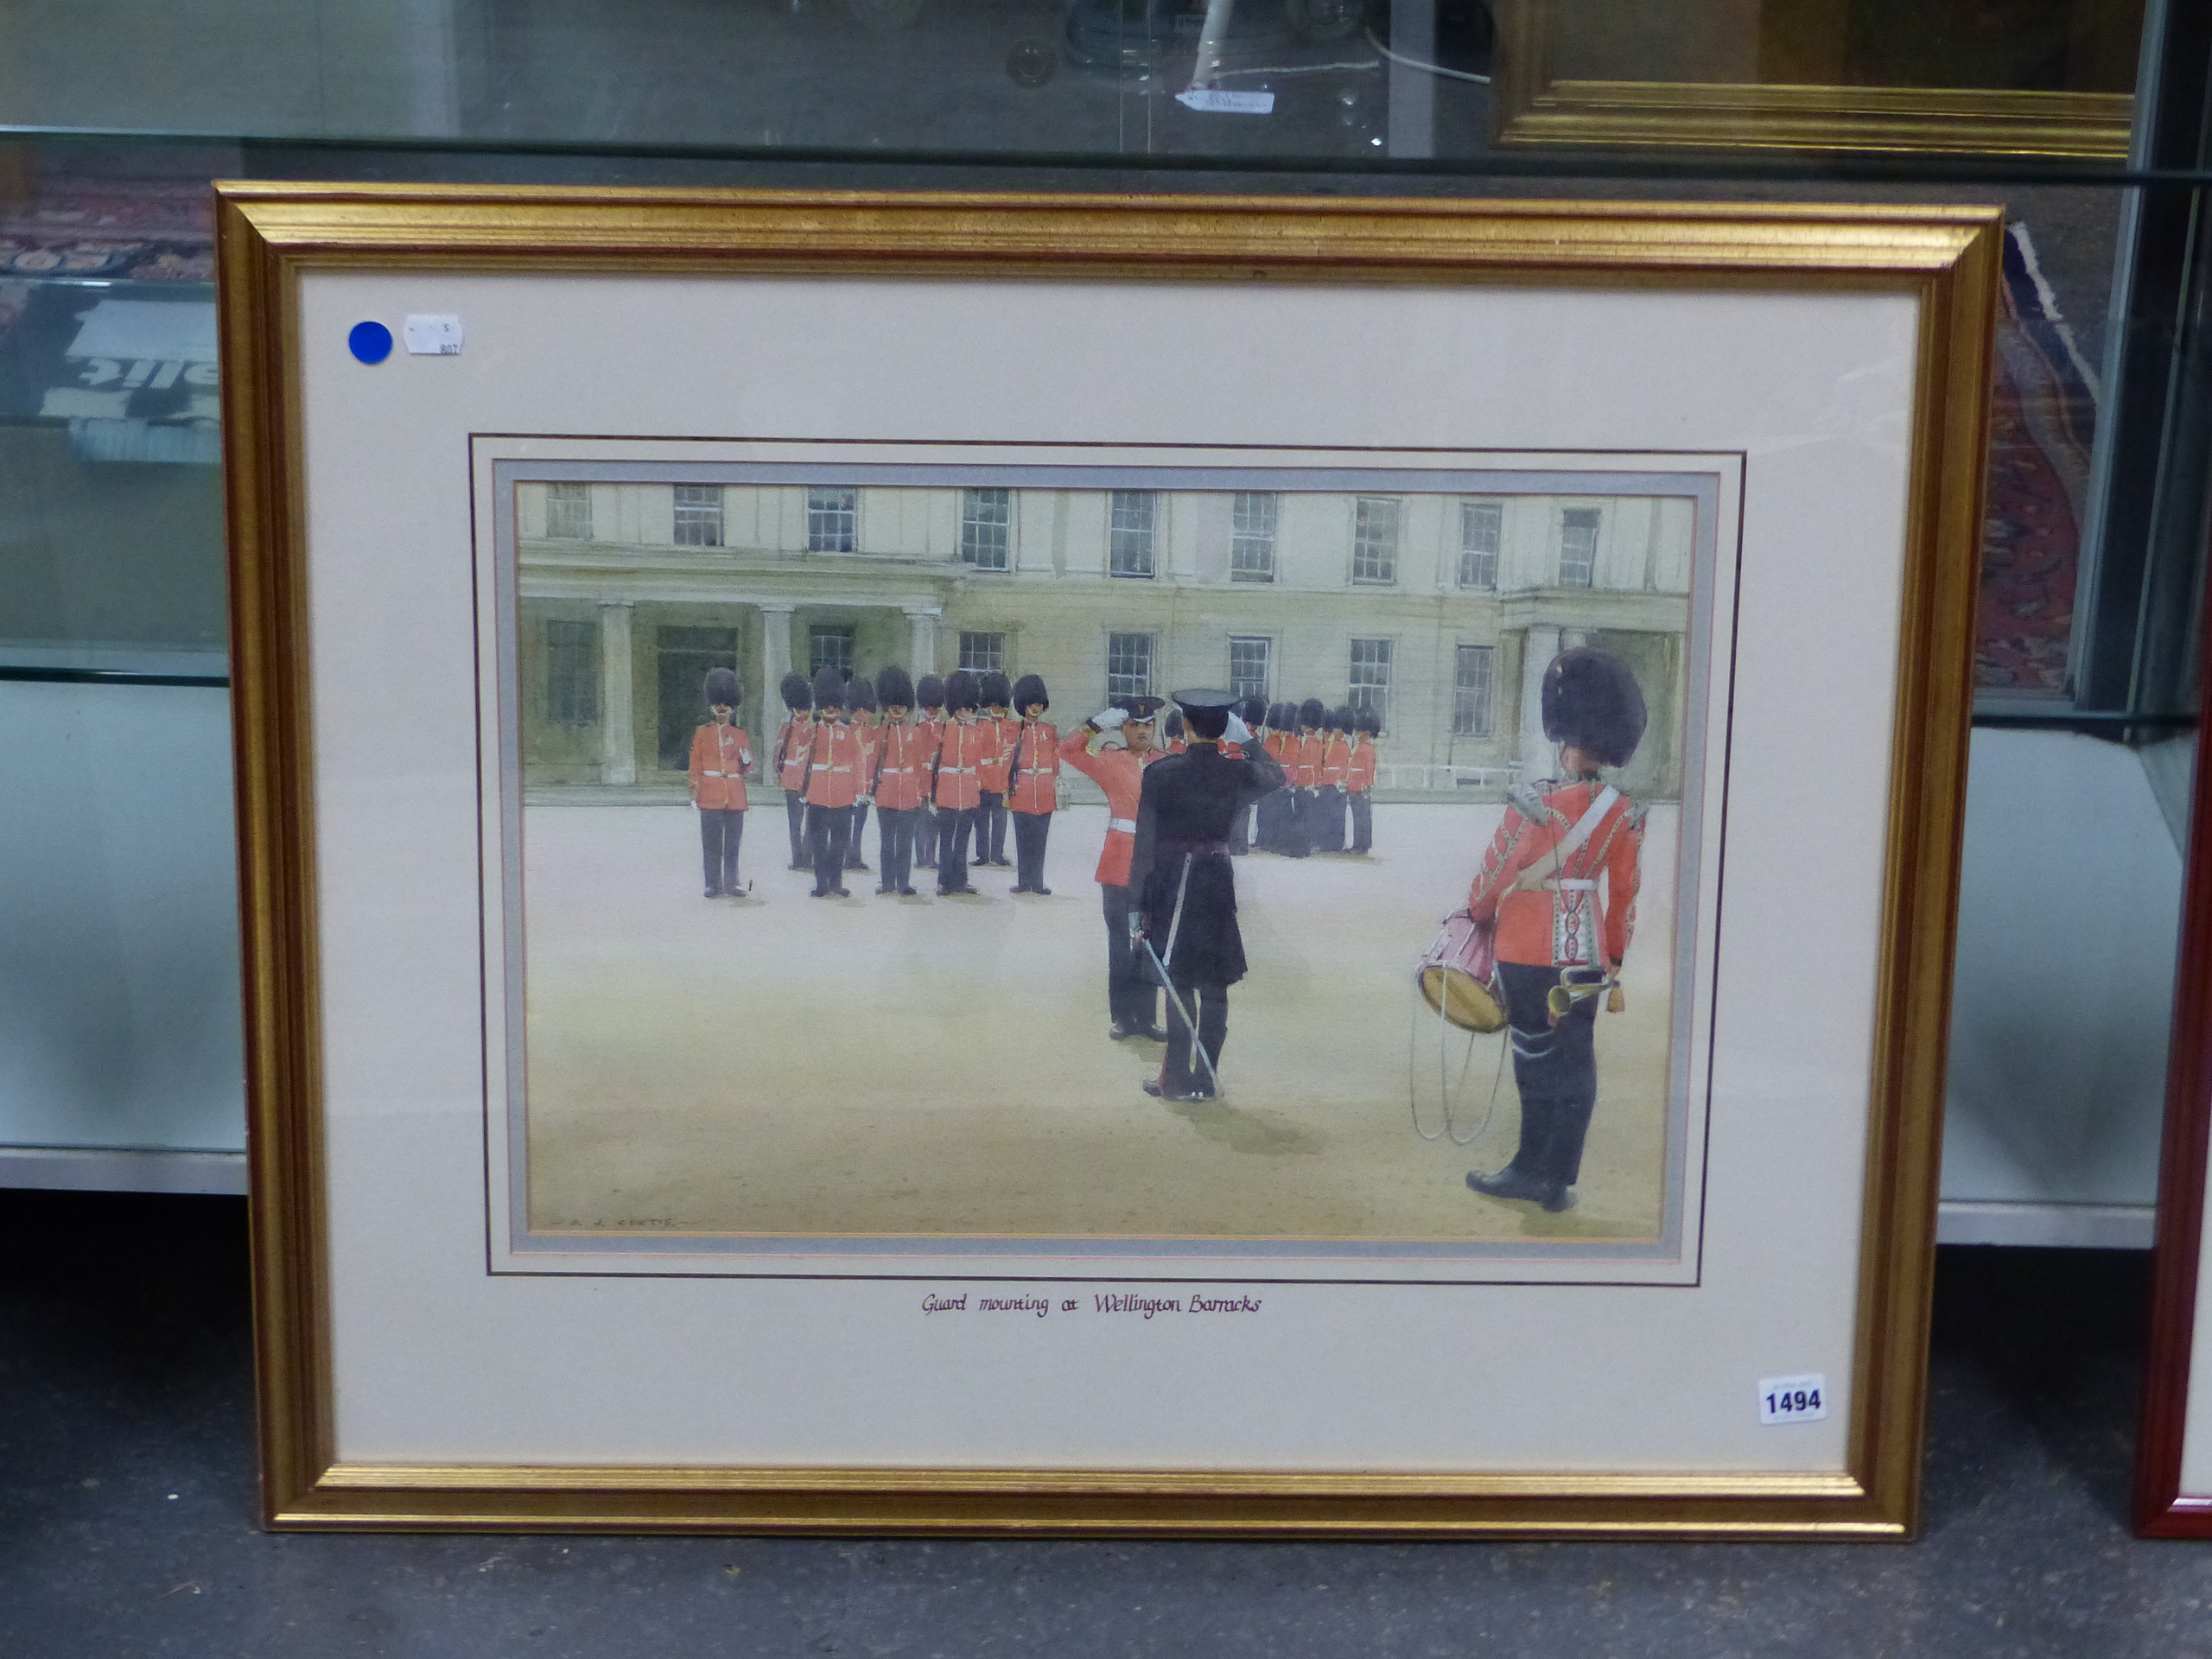 D.J CURTIS (1948 - ) ARR. GUARD MOUNTING AT WELLINGTON BARRACKS. SIGNED WATERCOLOUR GALLERY LABEL - Image 5 of 7